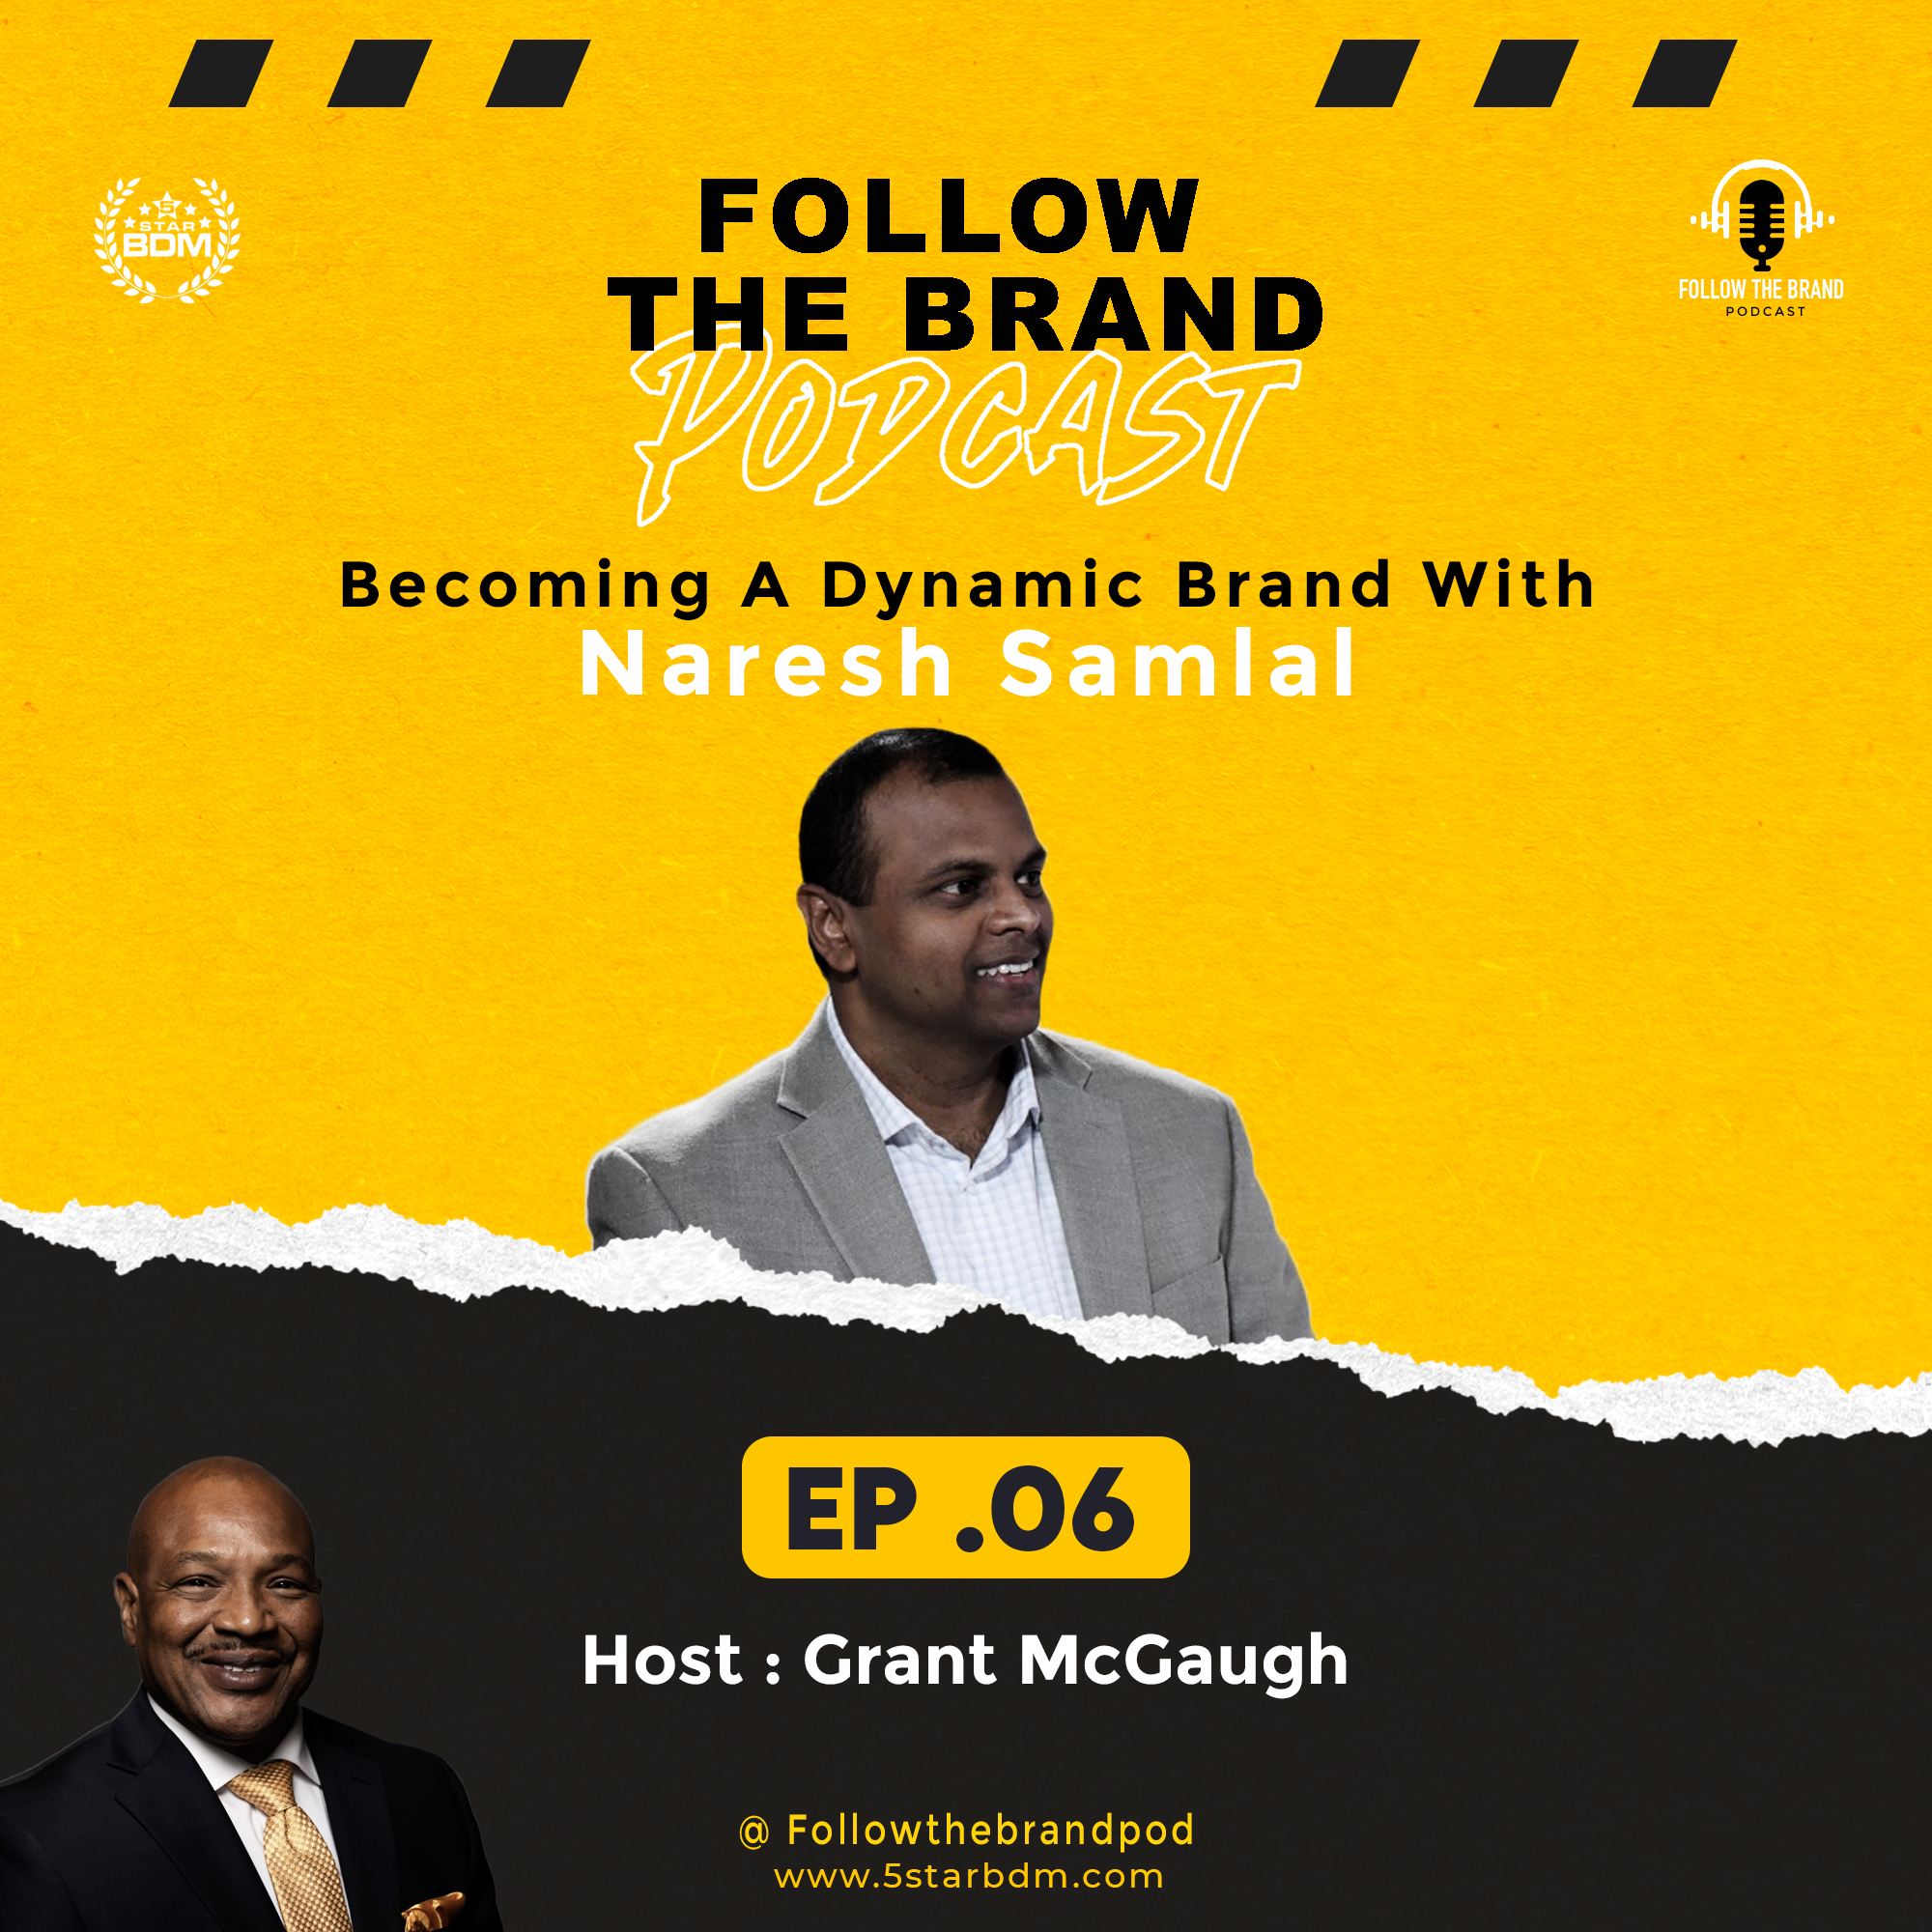 Episode 6: The Dynamics of Personal Branding featuring Naresh Samlal